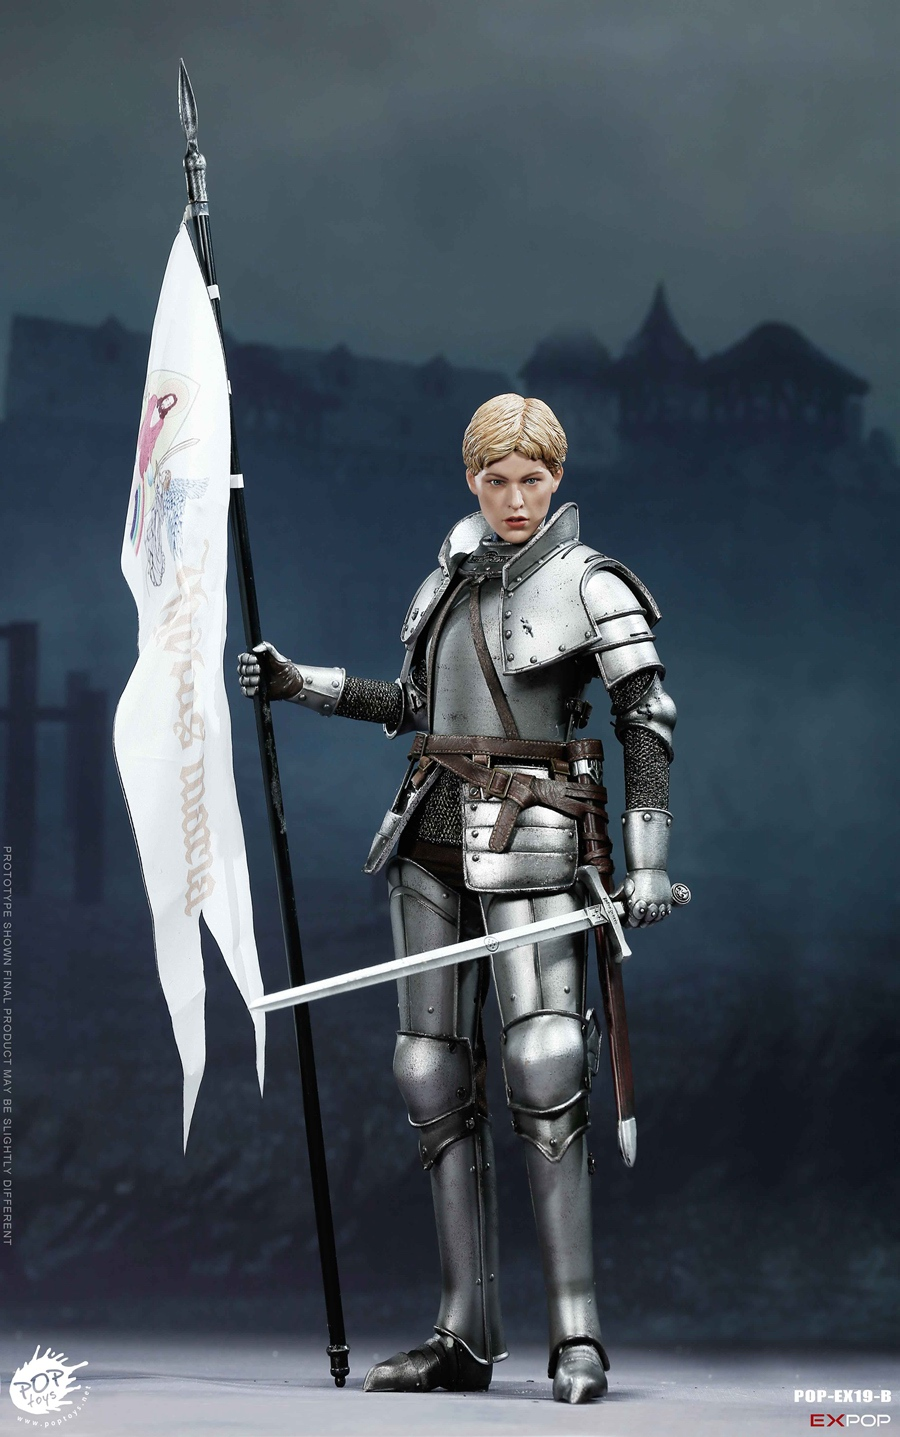 knight - NEW PRODUCT: POPTOYS New Products: 1/6 St. Knights - Assault Edition & Triumph Edition & Iron Armor (POP-EX19 ABC) 151